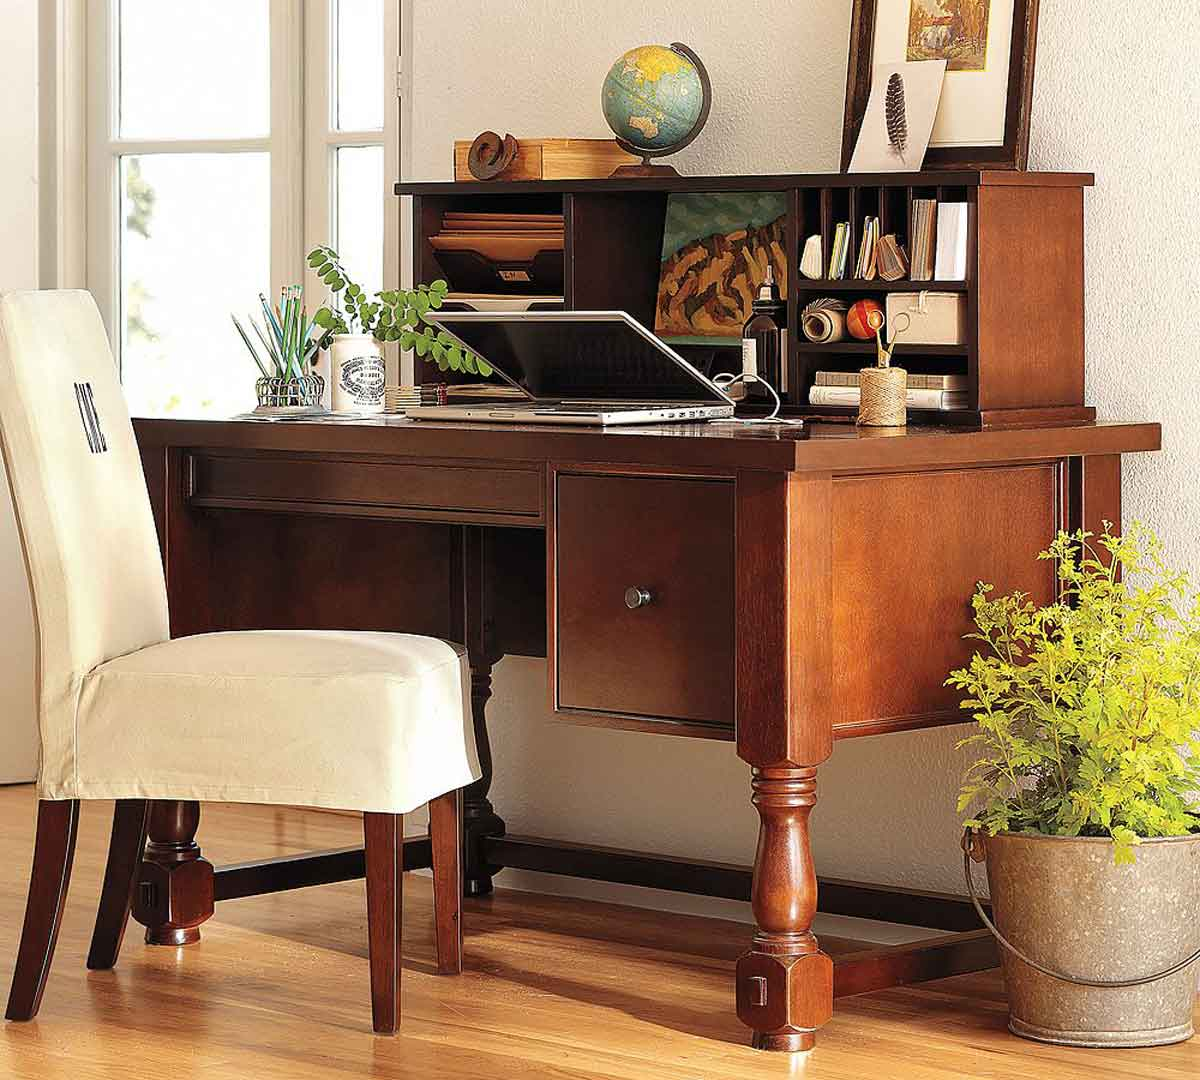 Home office design ideas - Home furniture design photos ...